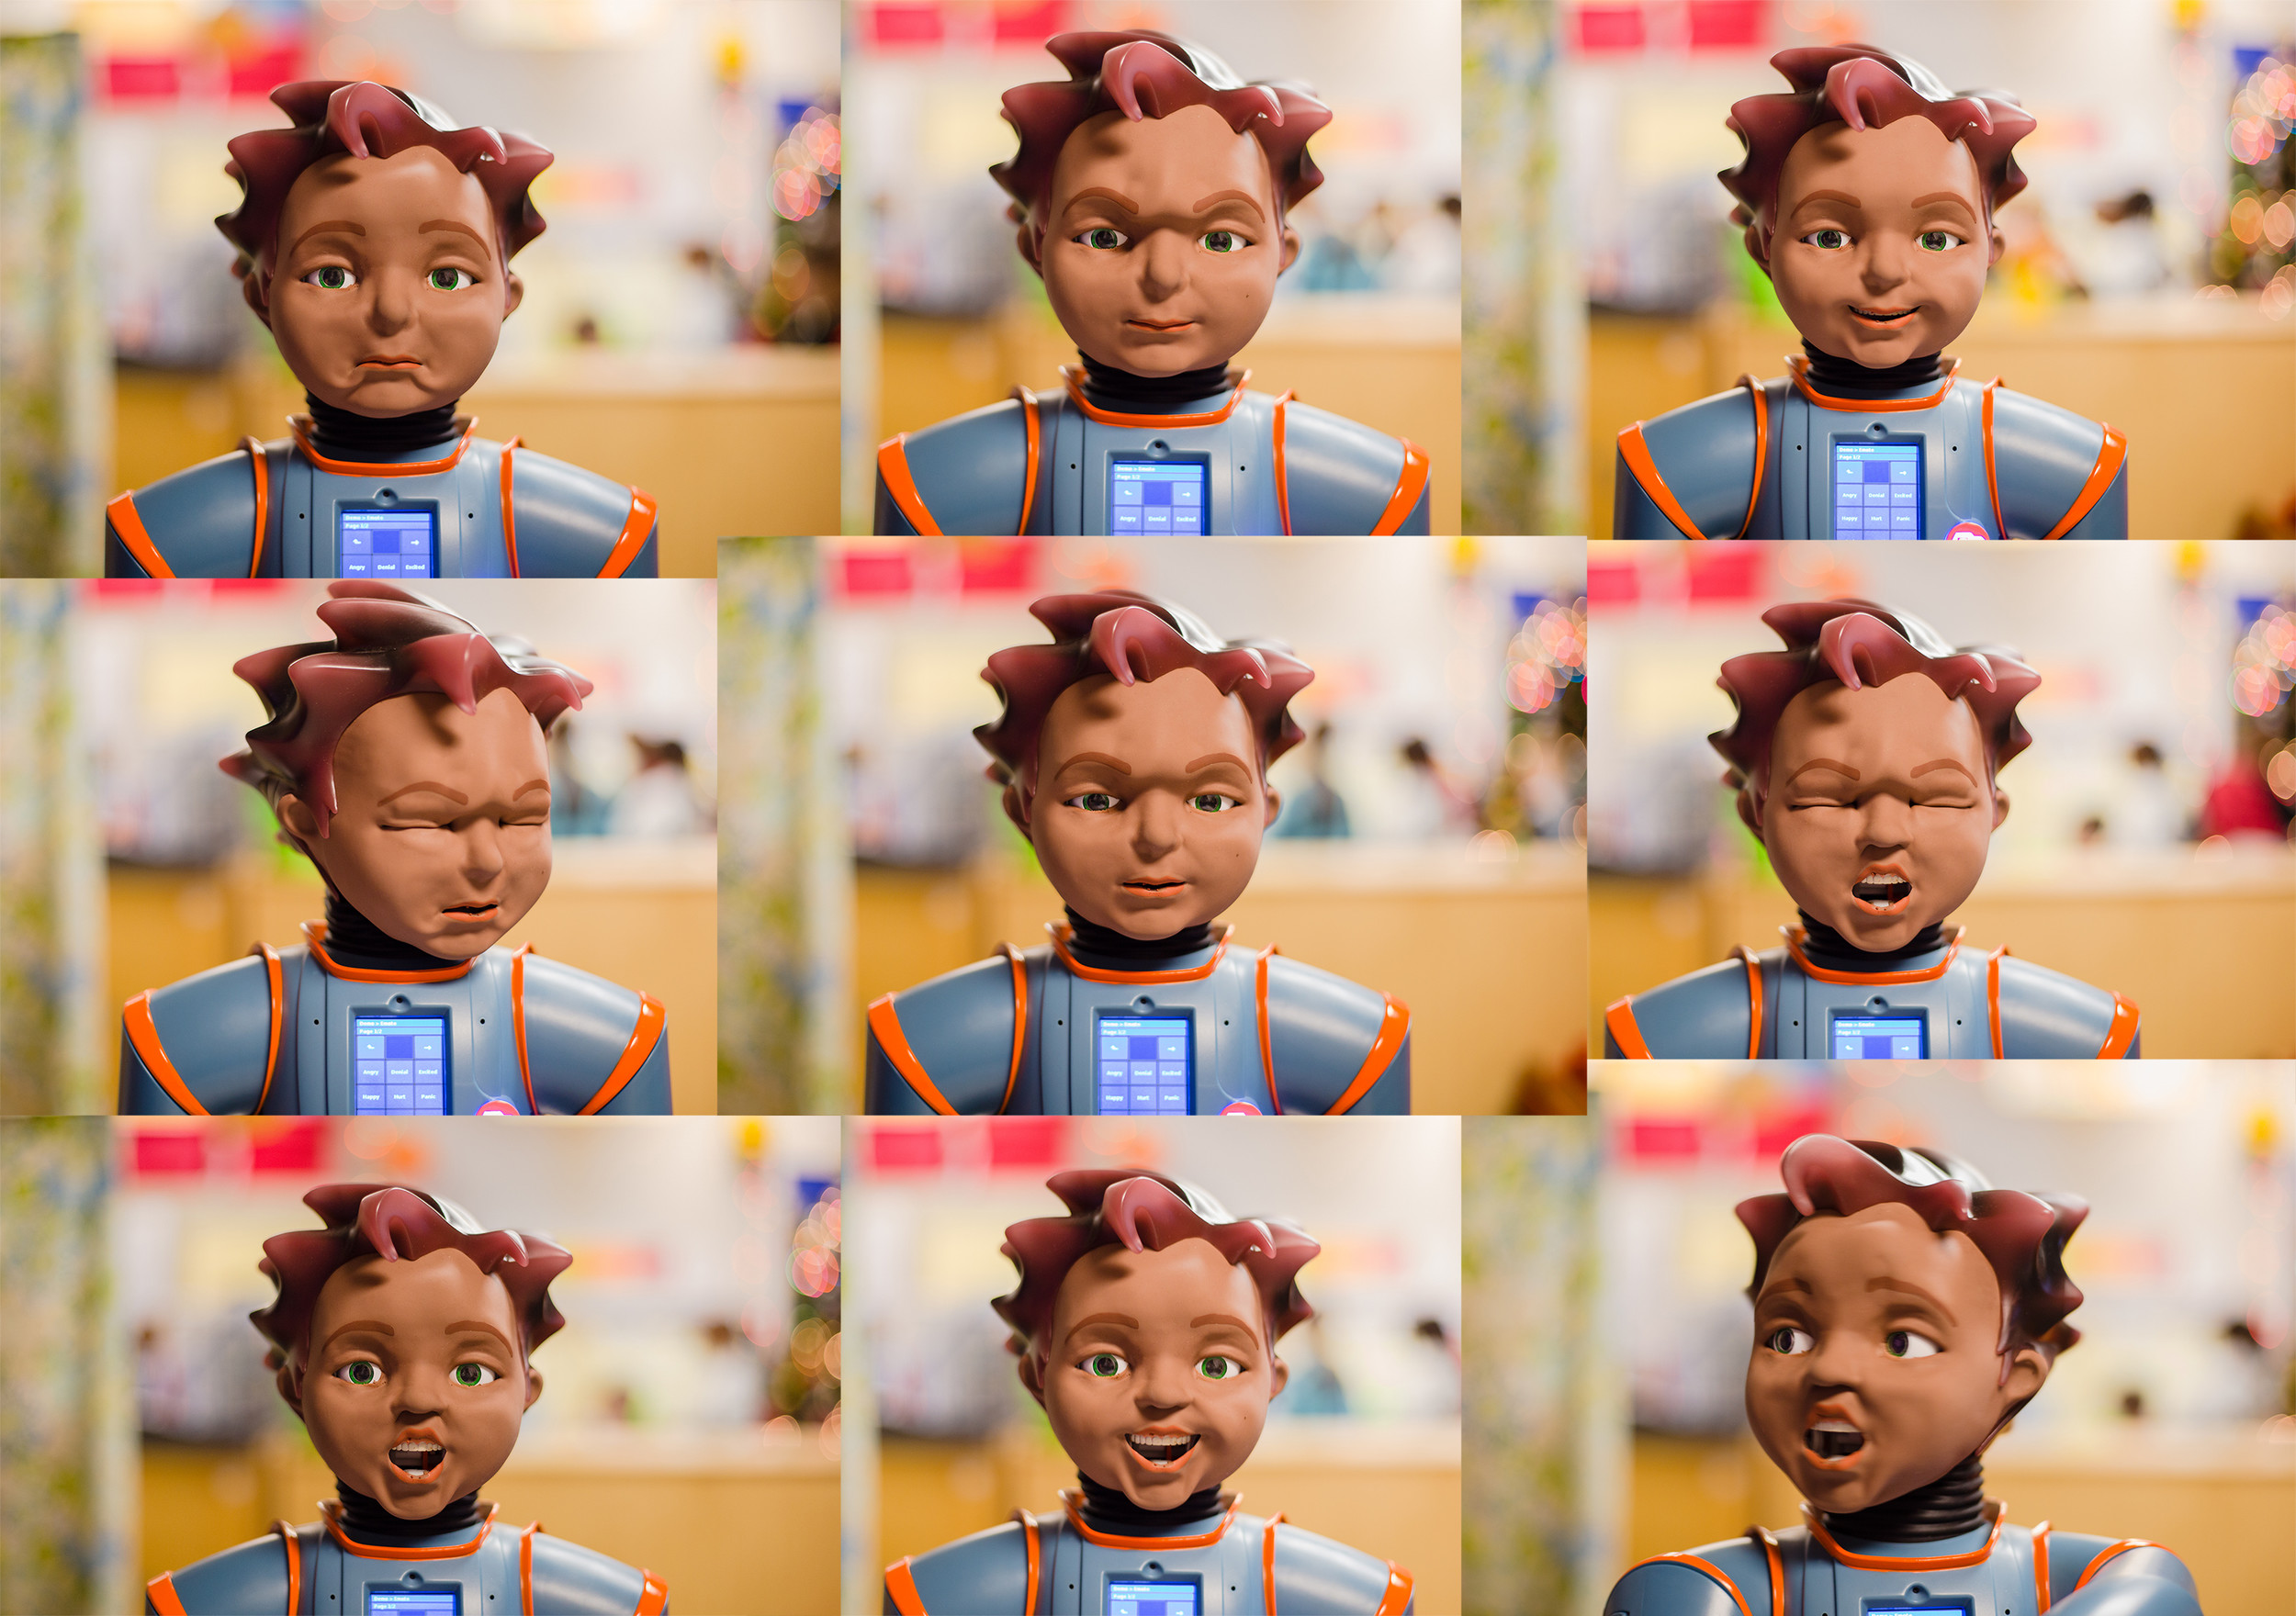 Meeting Milo Robot Uses Spectrum Of Facial Expressions To Engage With Autistic Students At